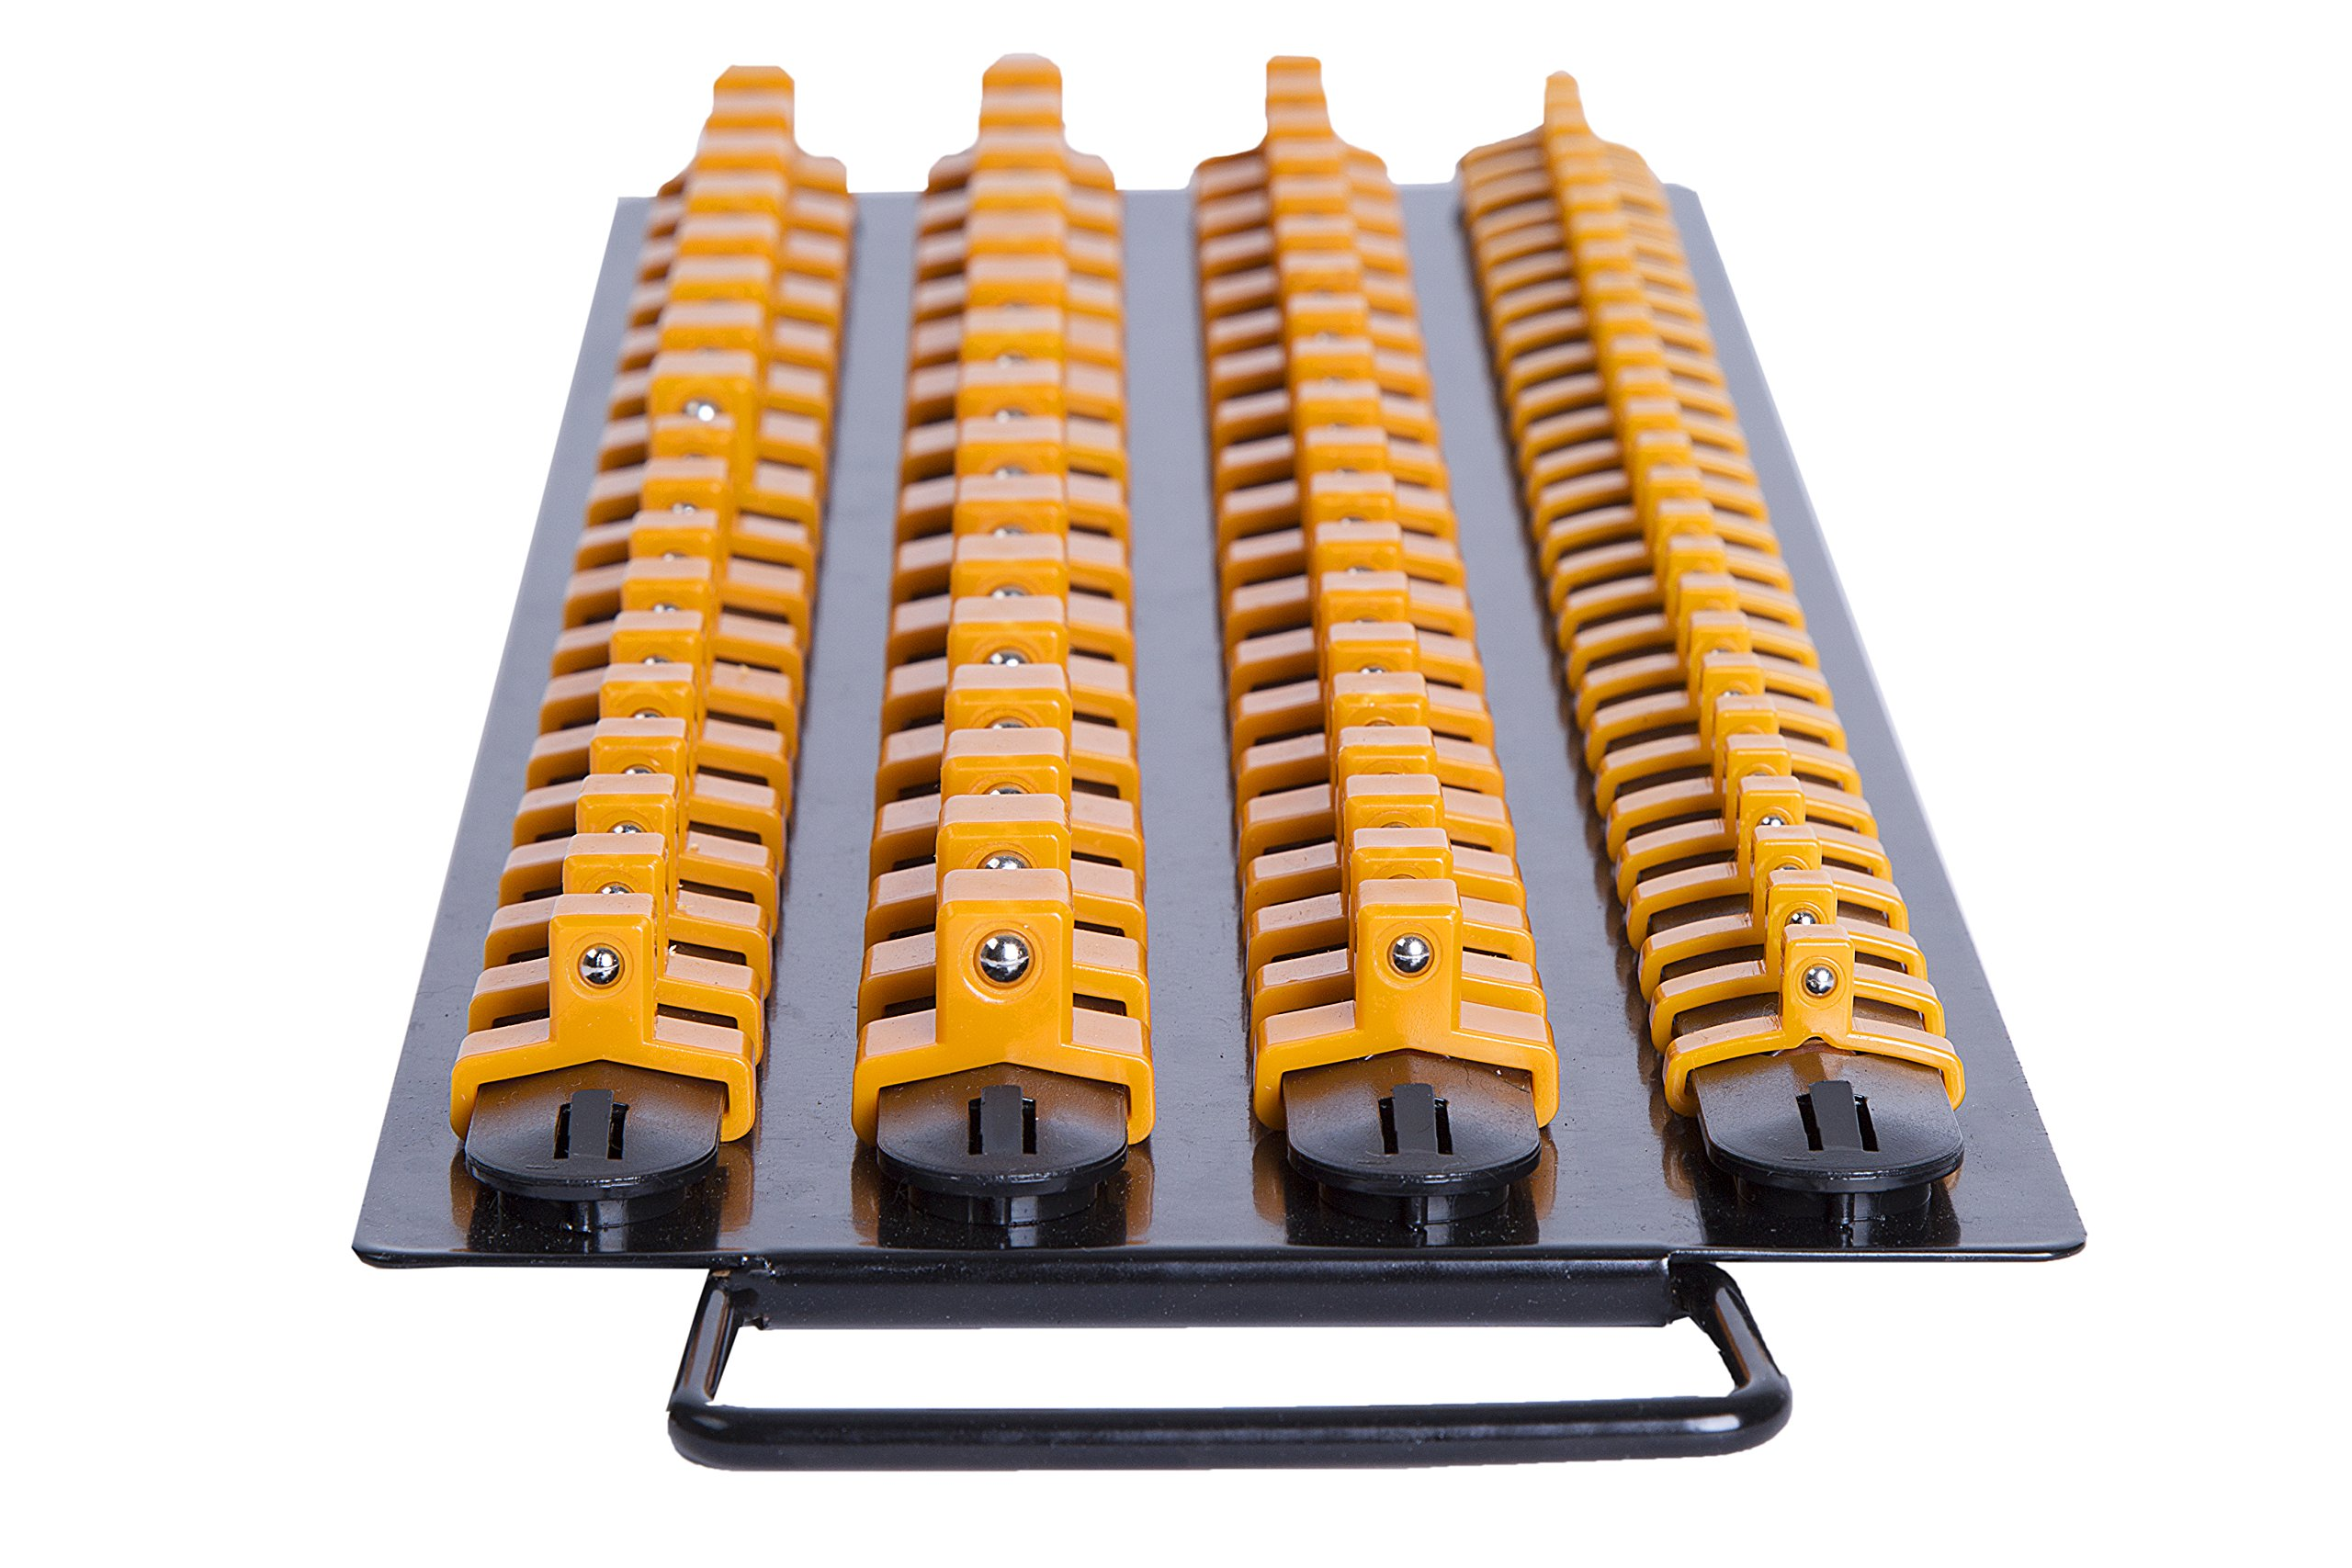 Inertia Tools 80 Piece Socket Organizer Tray - Holder 20 x 1/4'' drive, 30 x 3/8'' drive, 30 x 1/2'' drive